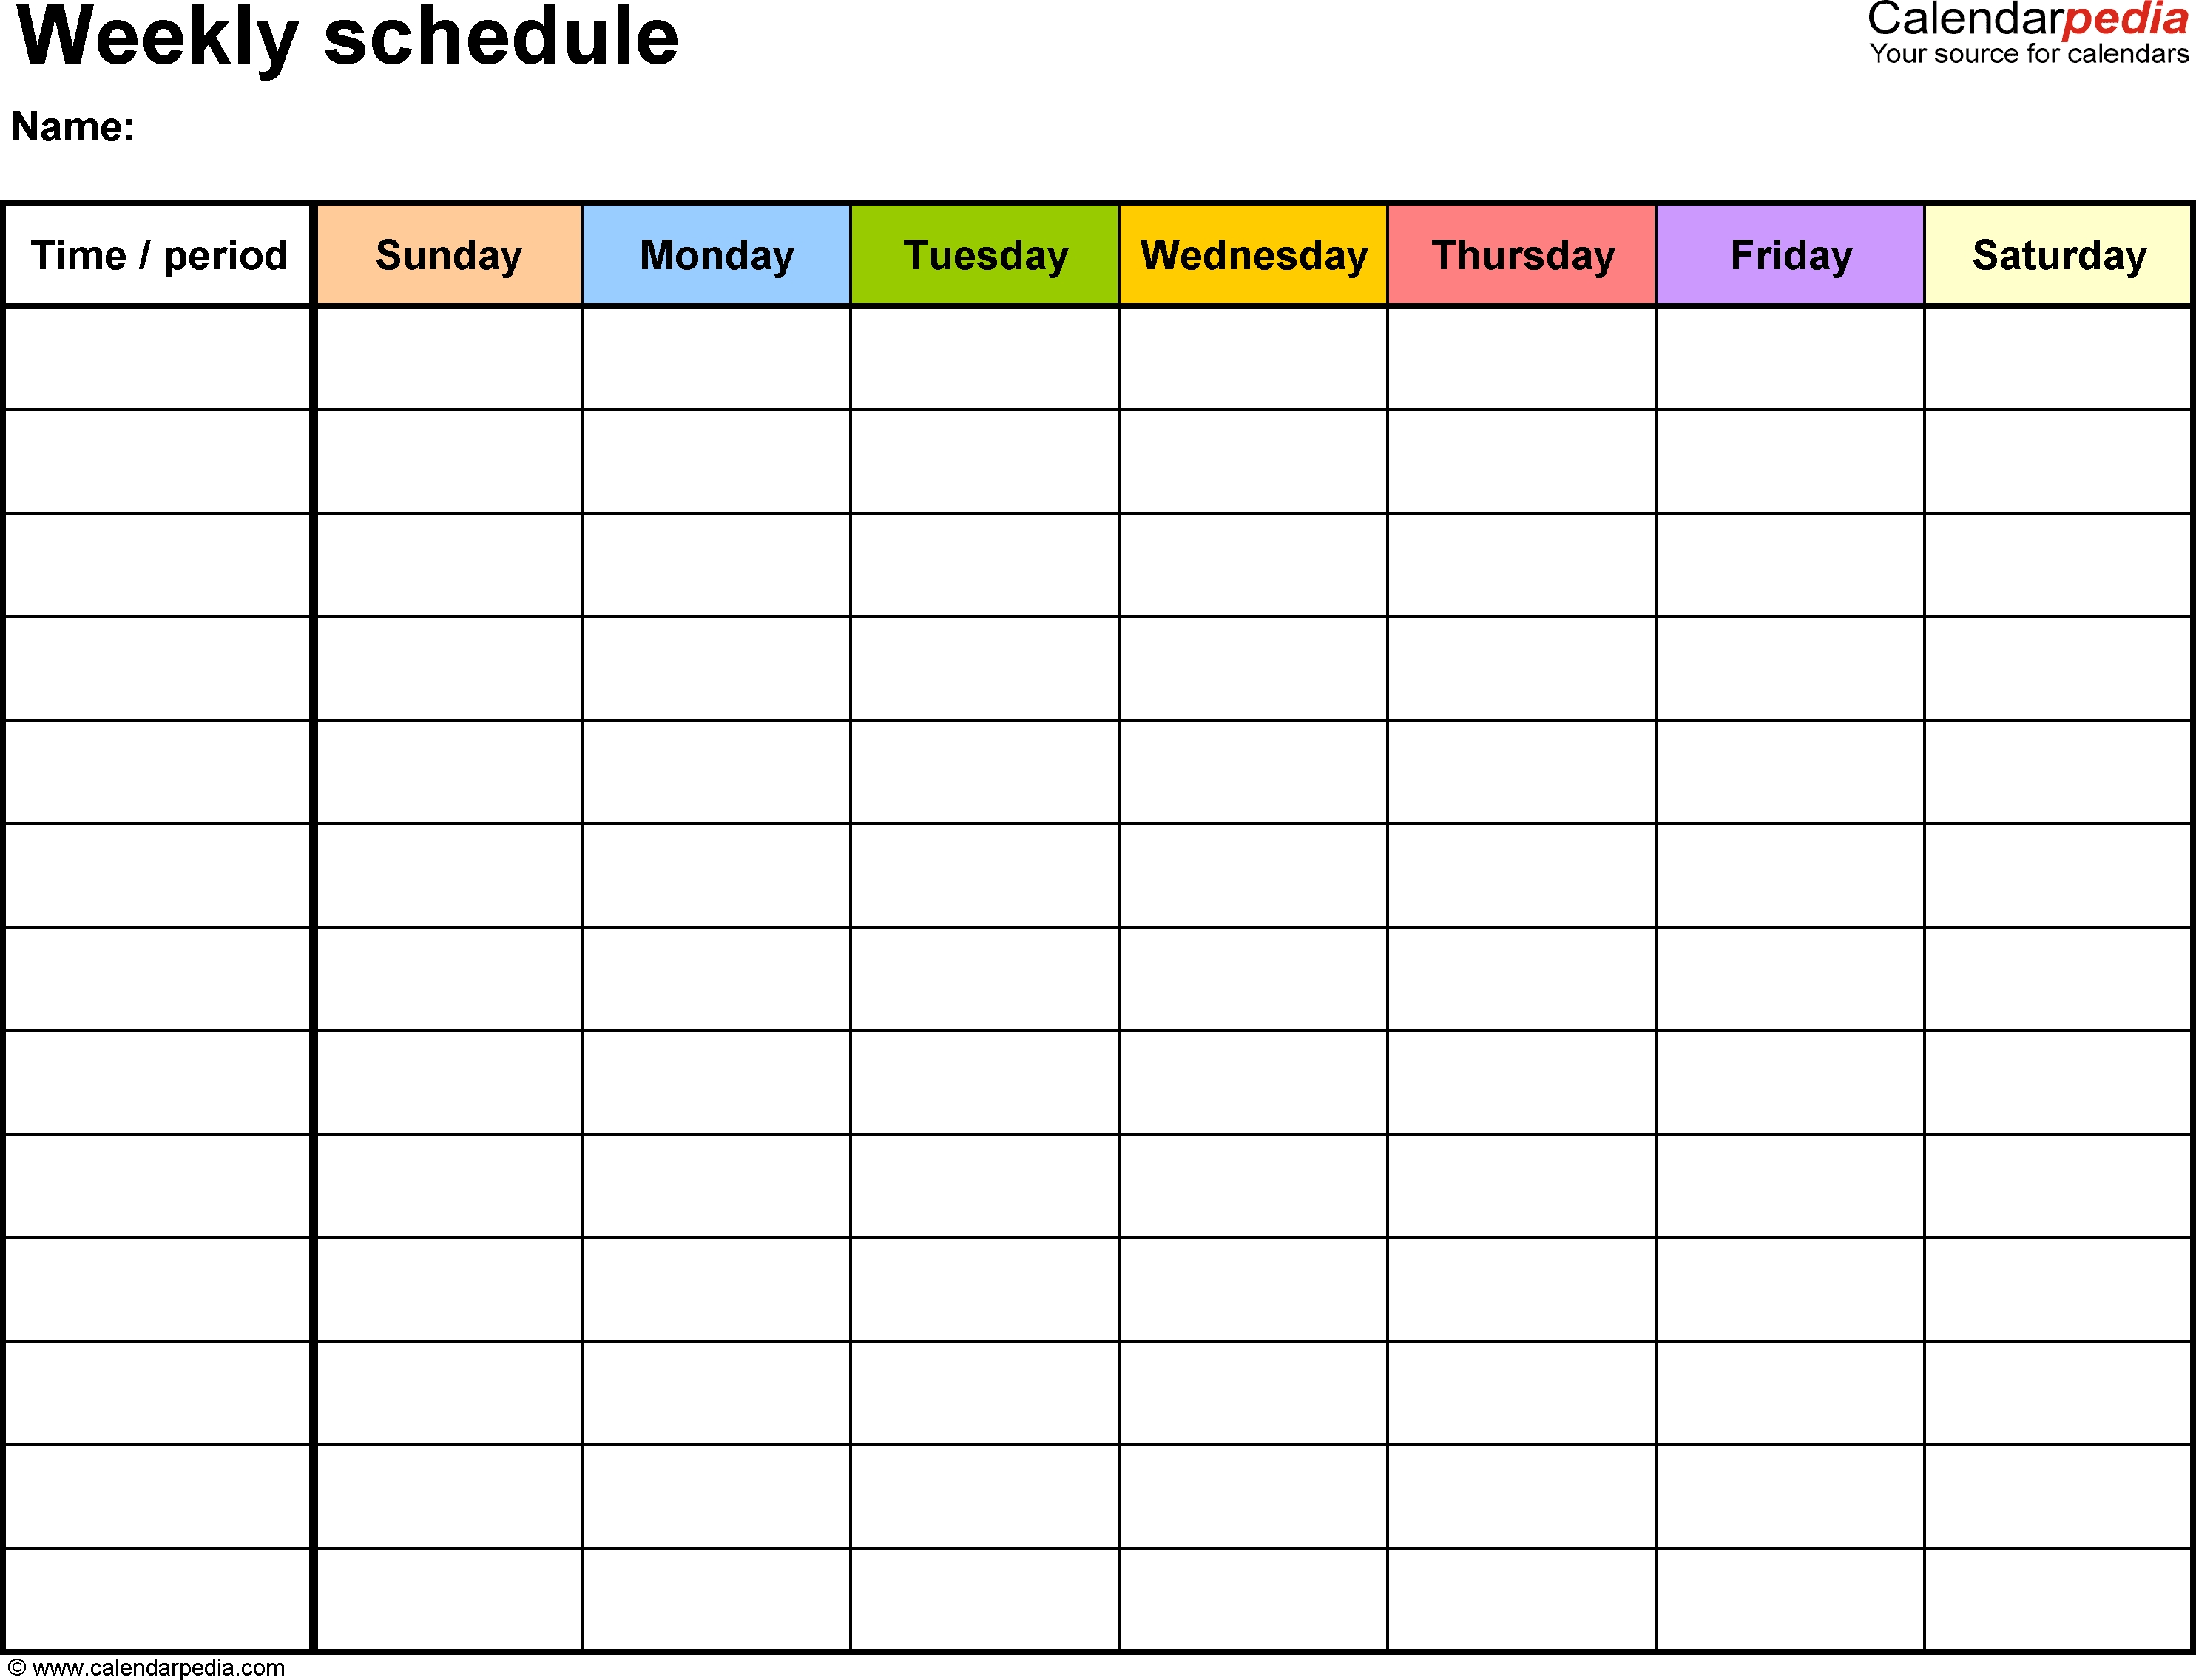 Free Weekly Schedule Templates For Word - 18 Templates within 7-Day Weekly Planner Template Printable